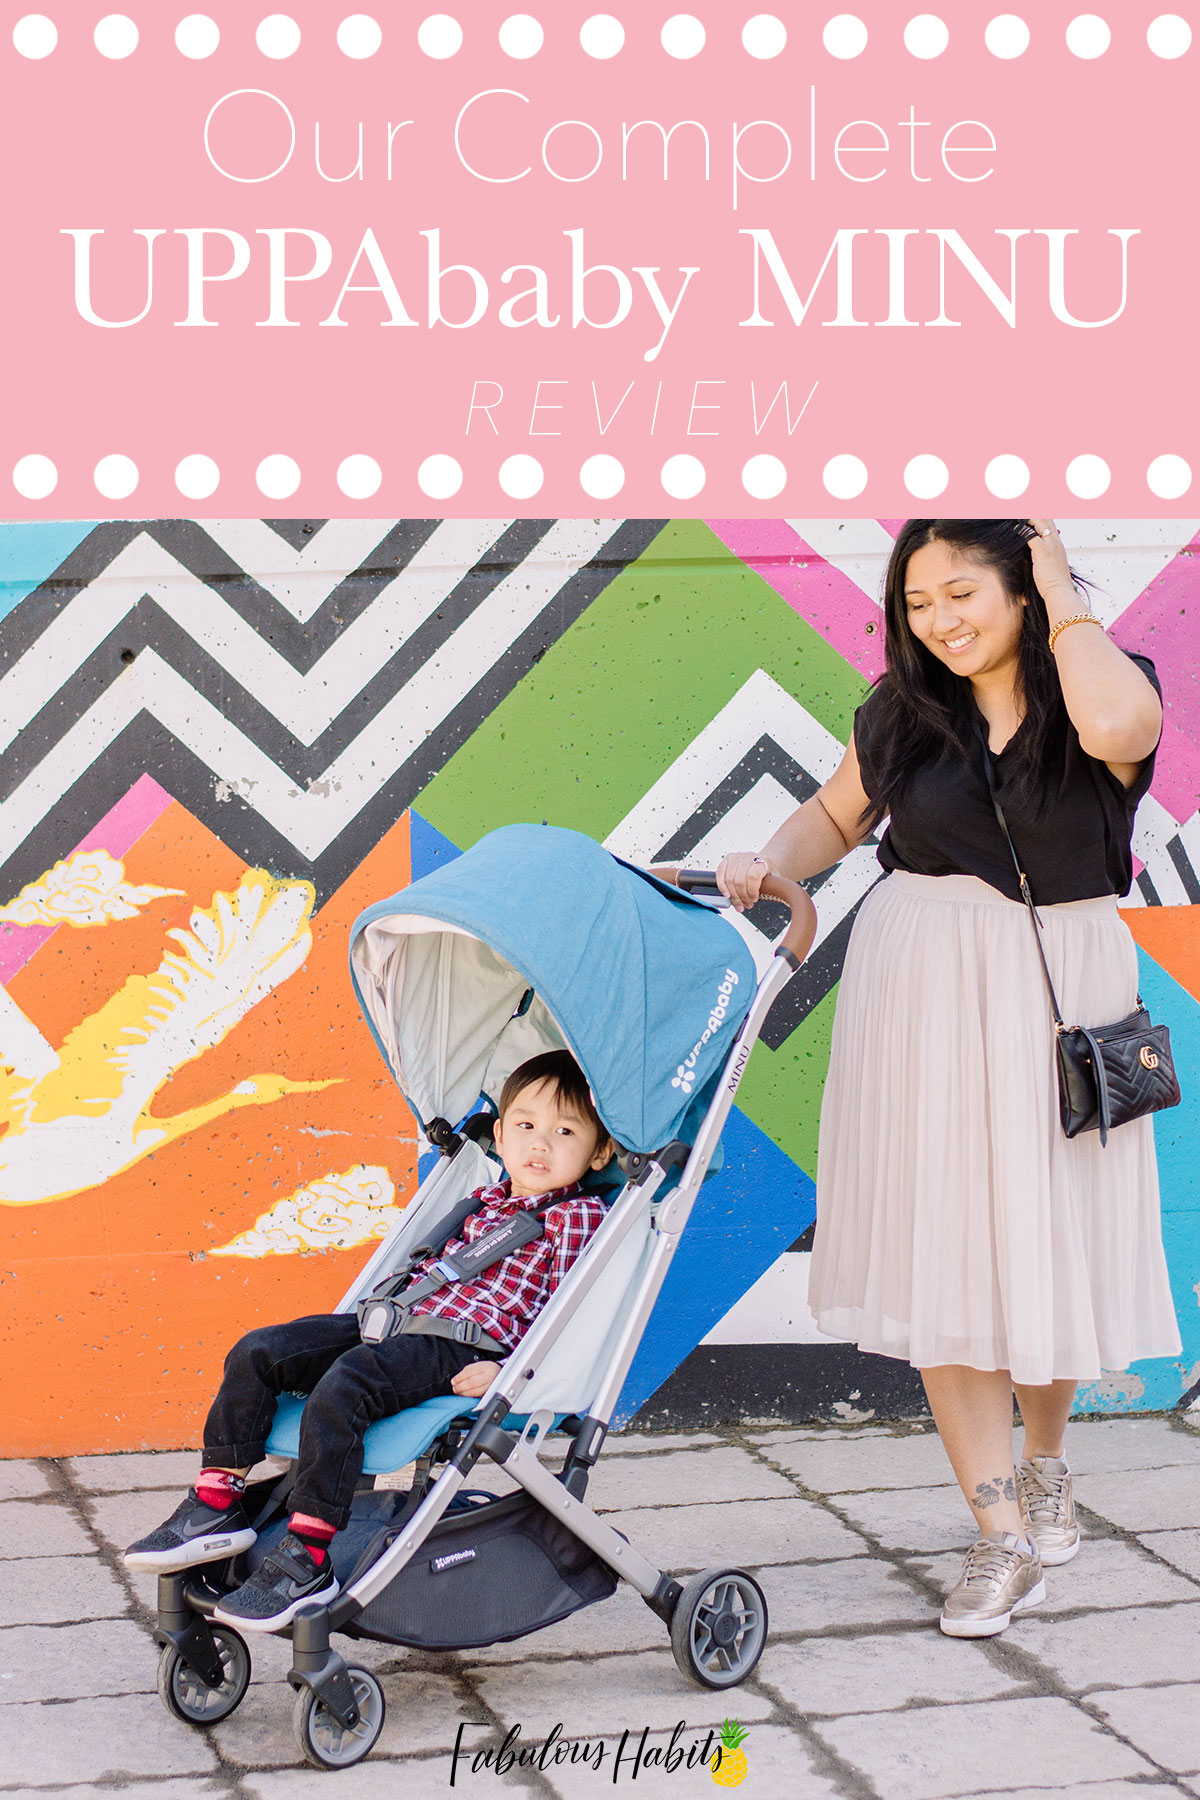 Mr. Toddler and I strolling along in the UPPAbaby MINU - here's our full UPPAbaby MINU Review so that you can make the best stroller decision for you and your fam.